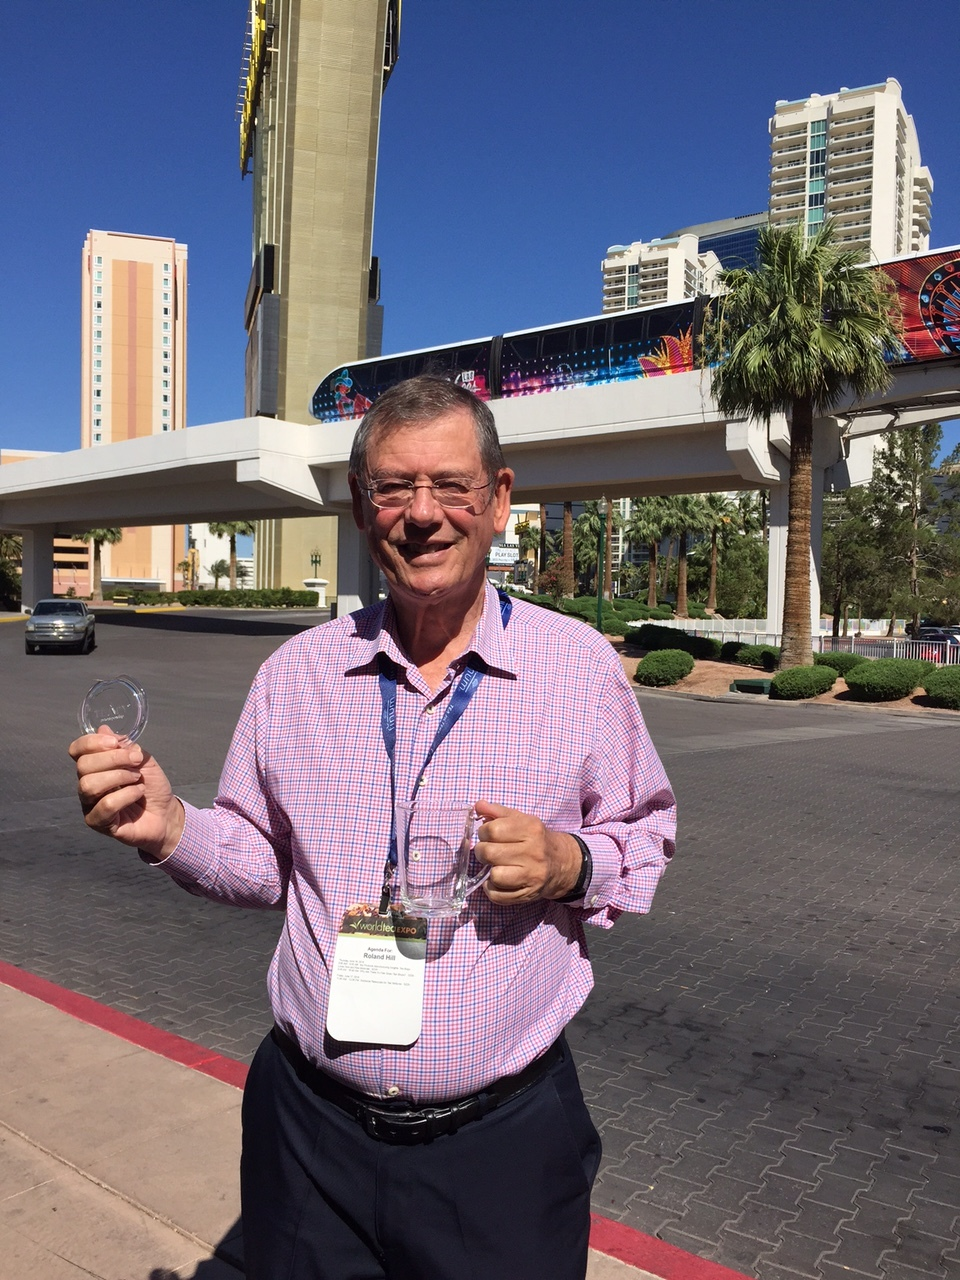 Roland Hill with TEAPY® at the World Tea Expo in Las Vegas. His Contra Vision one-way vision invention is shown on the windows of the monorail in the background.